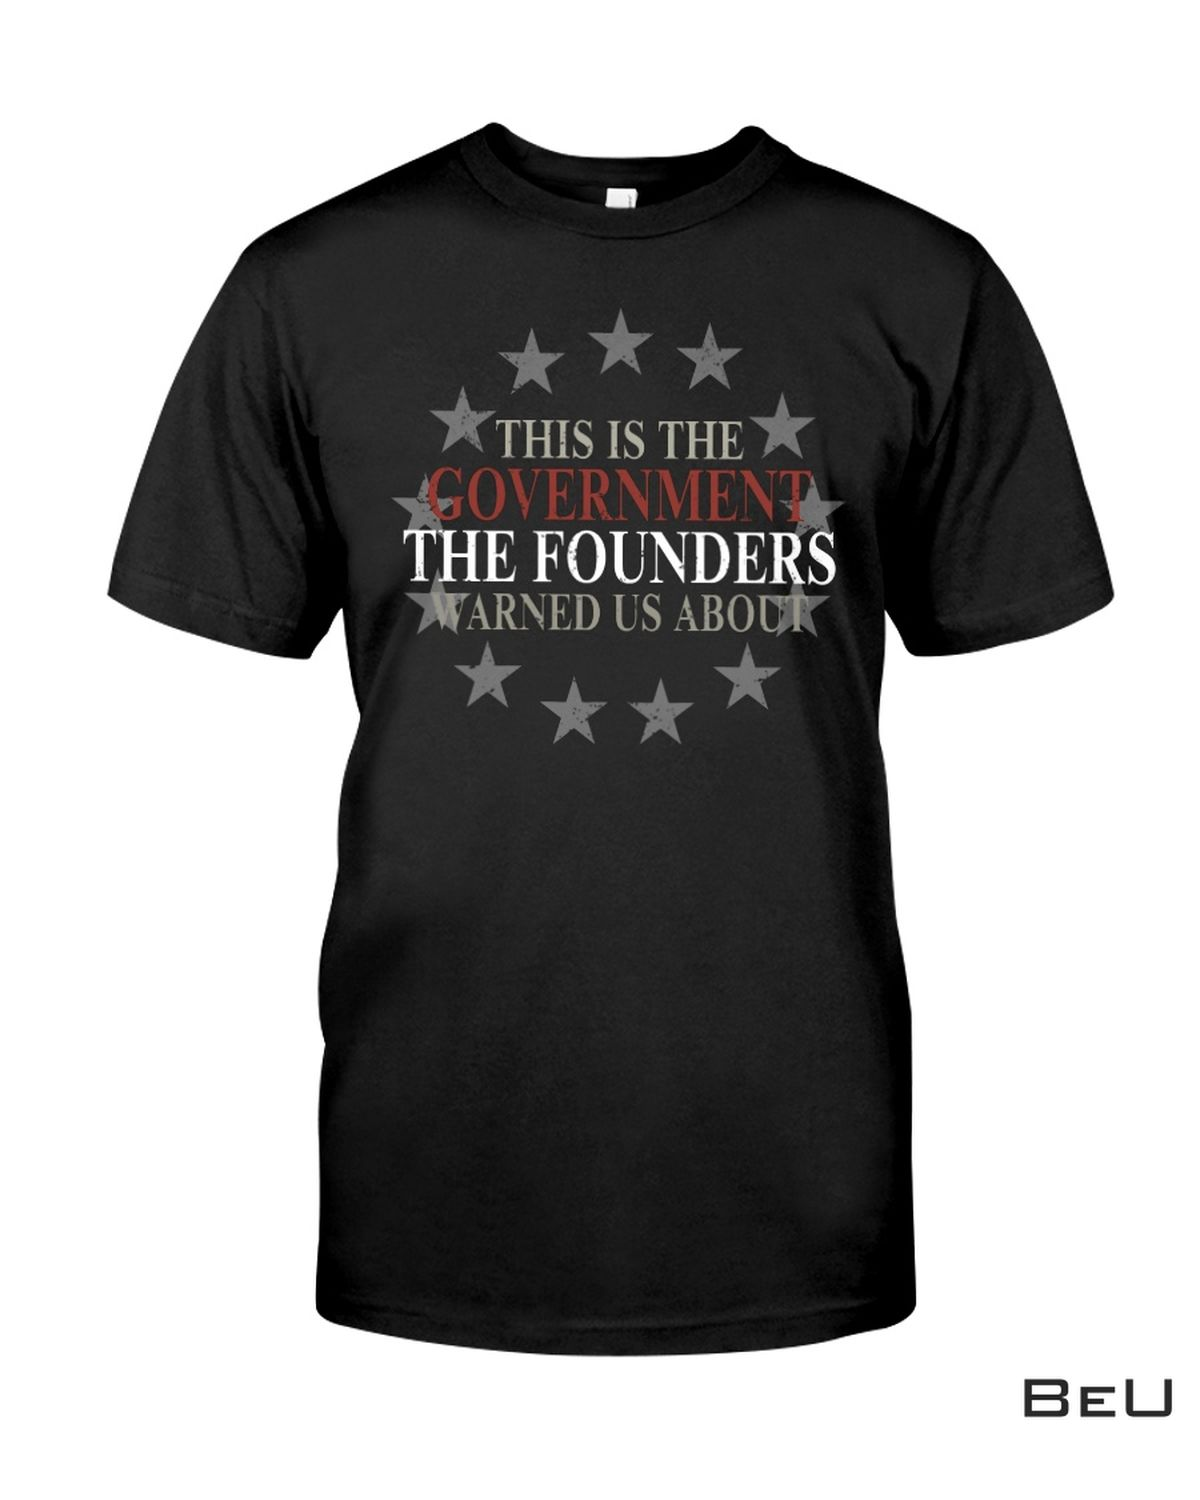 This Is Government The Founders Warned Us About Shirt, hoodie, tank top